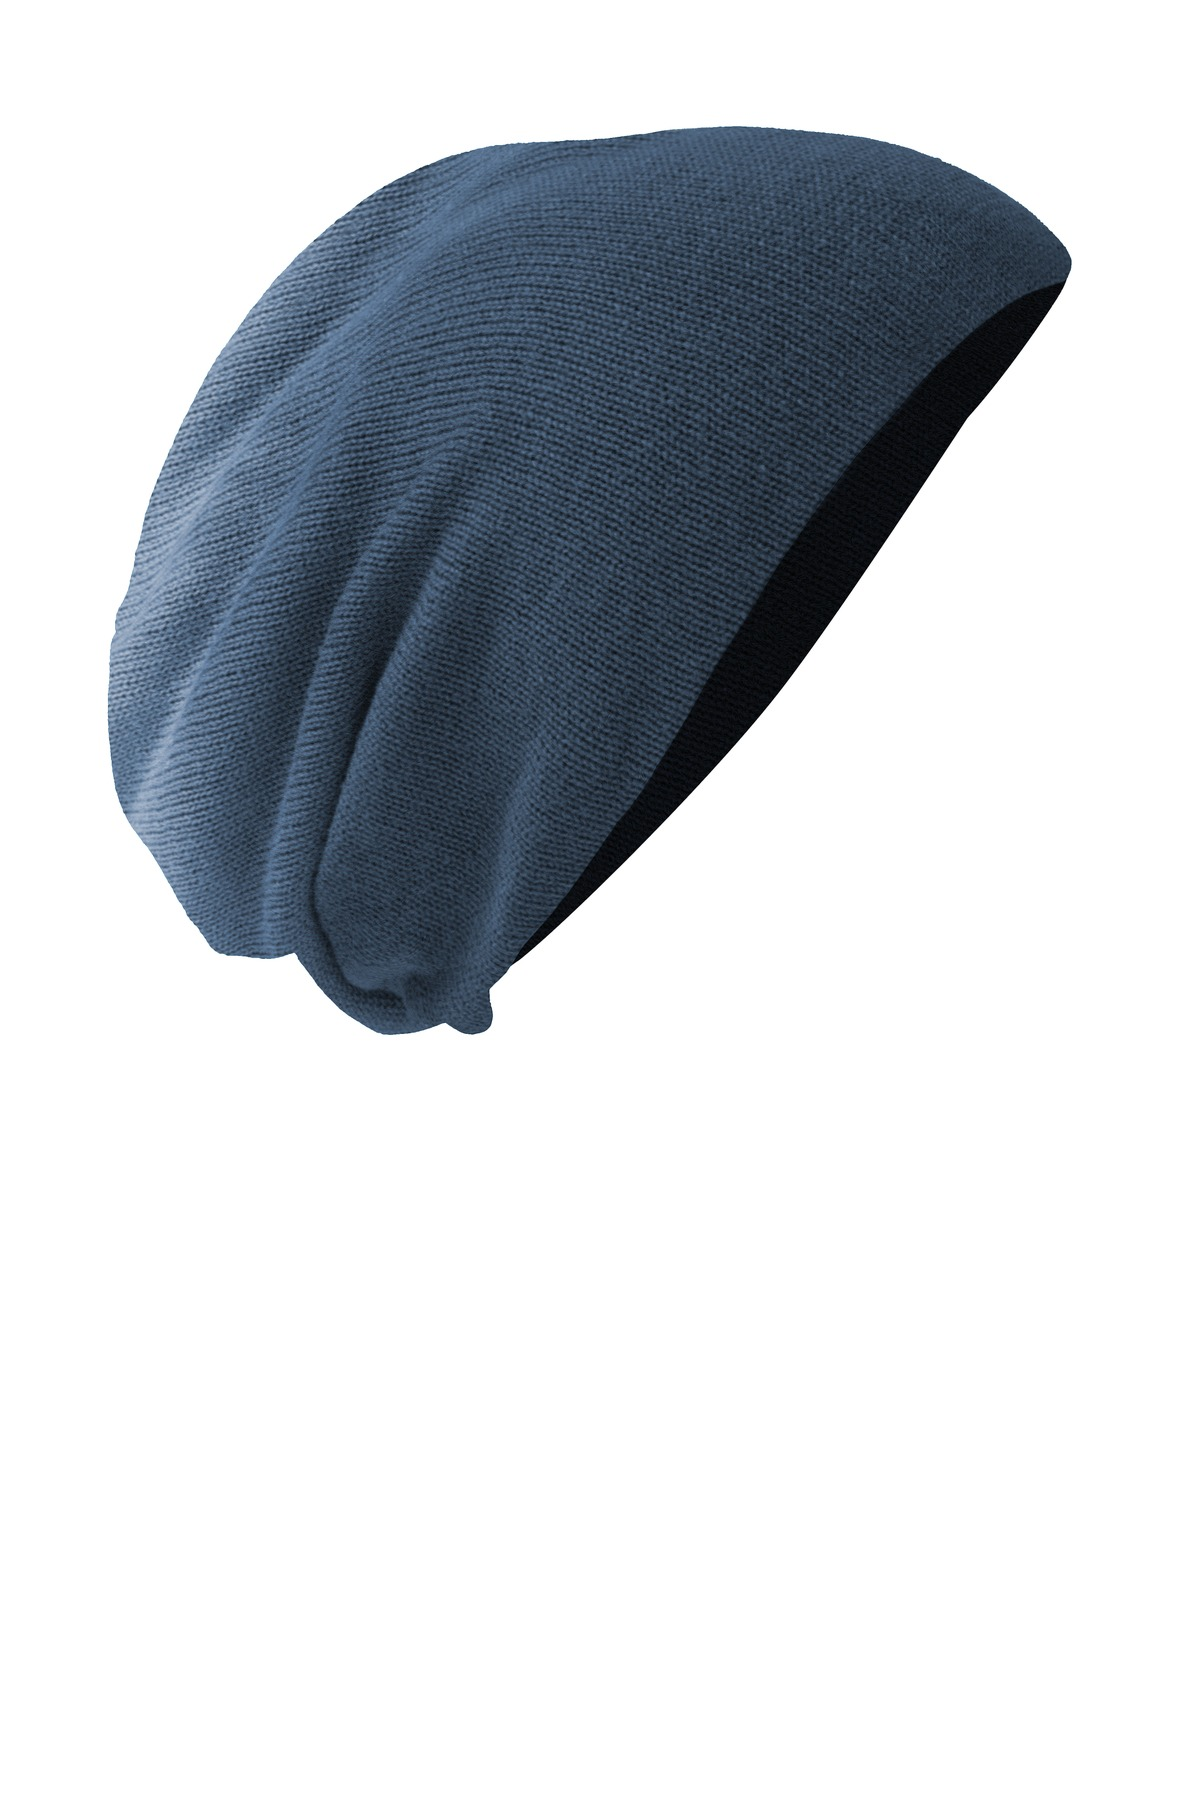 District ®  Slouch Beanie DT618 - Navy Dip Dye